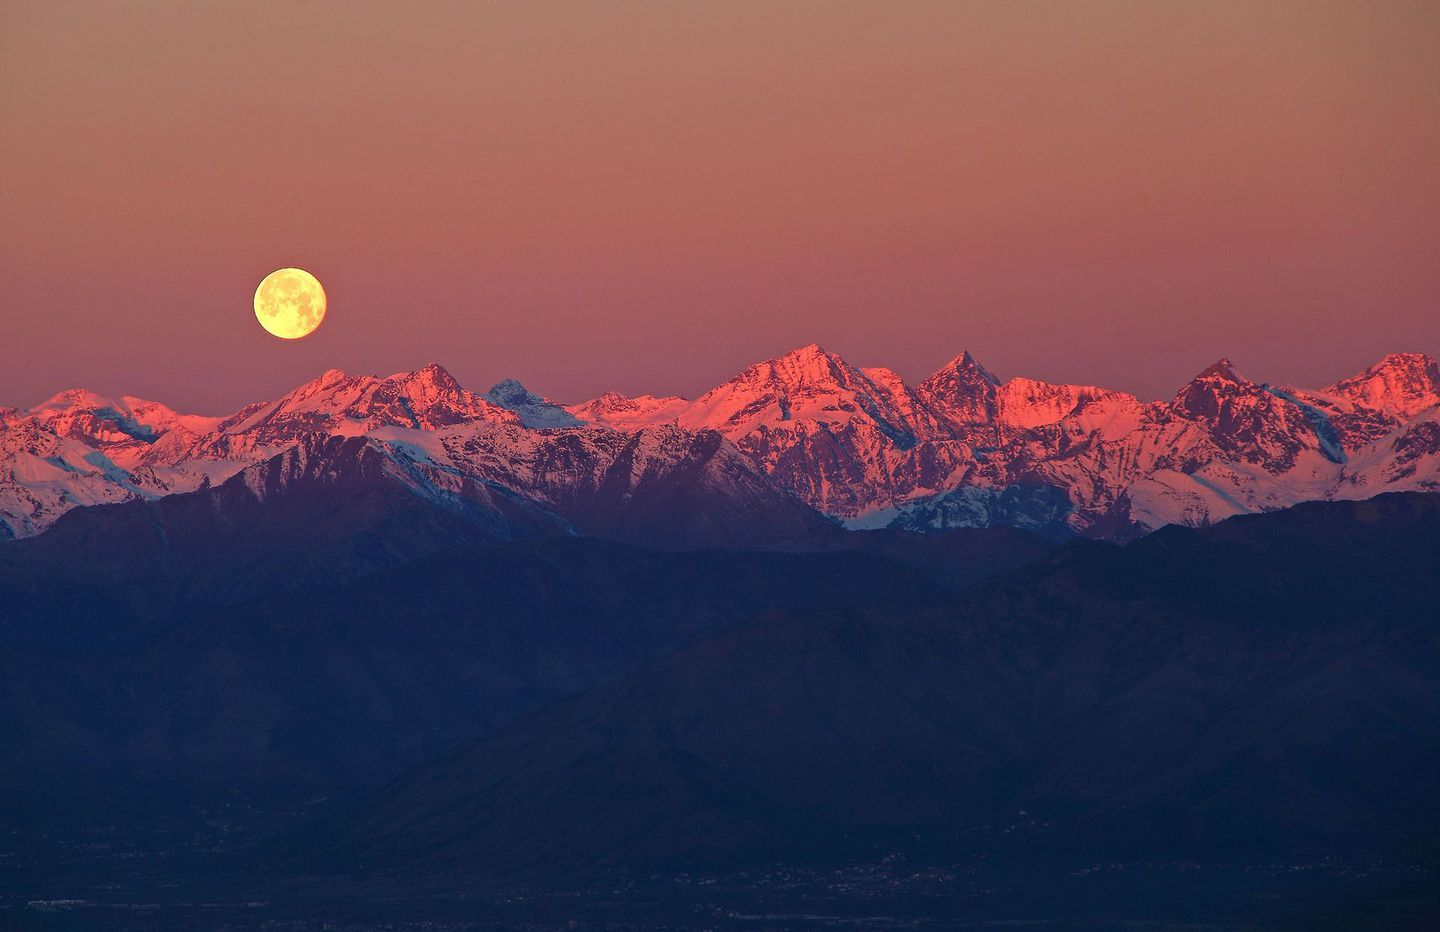 Full-moon-over-the-alps-%25c2%25a9-stefano-de-rosa